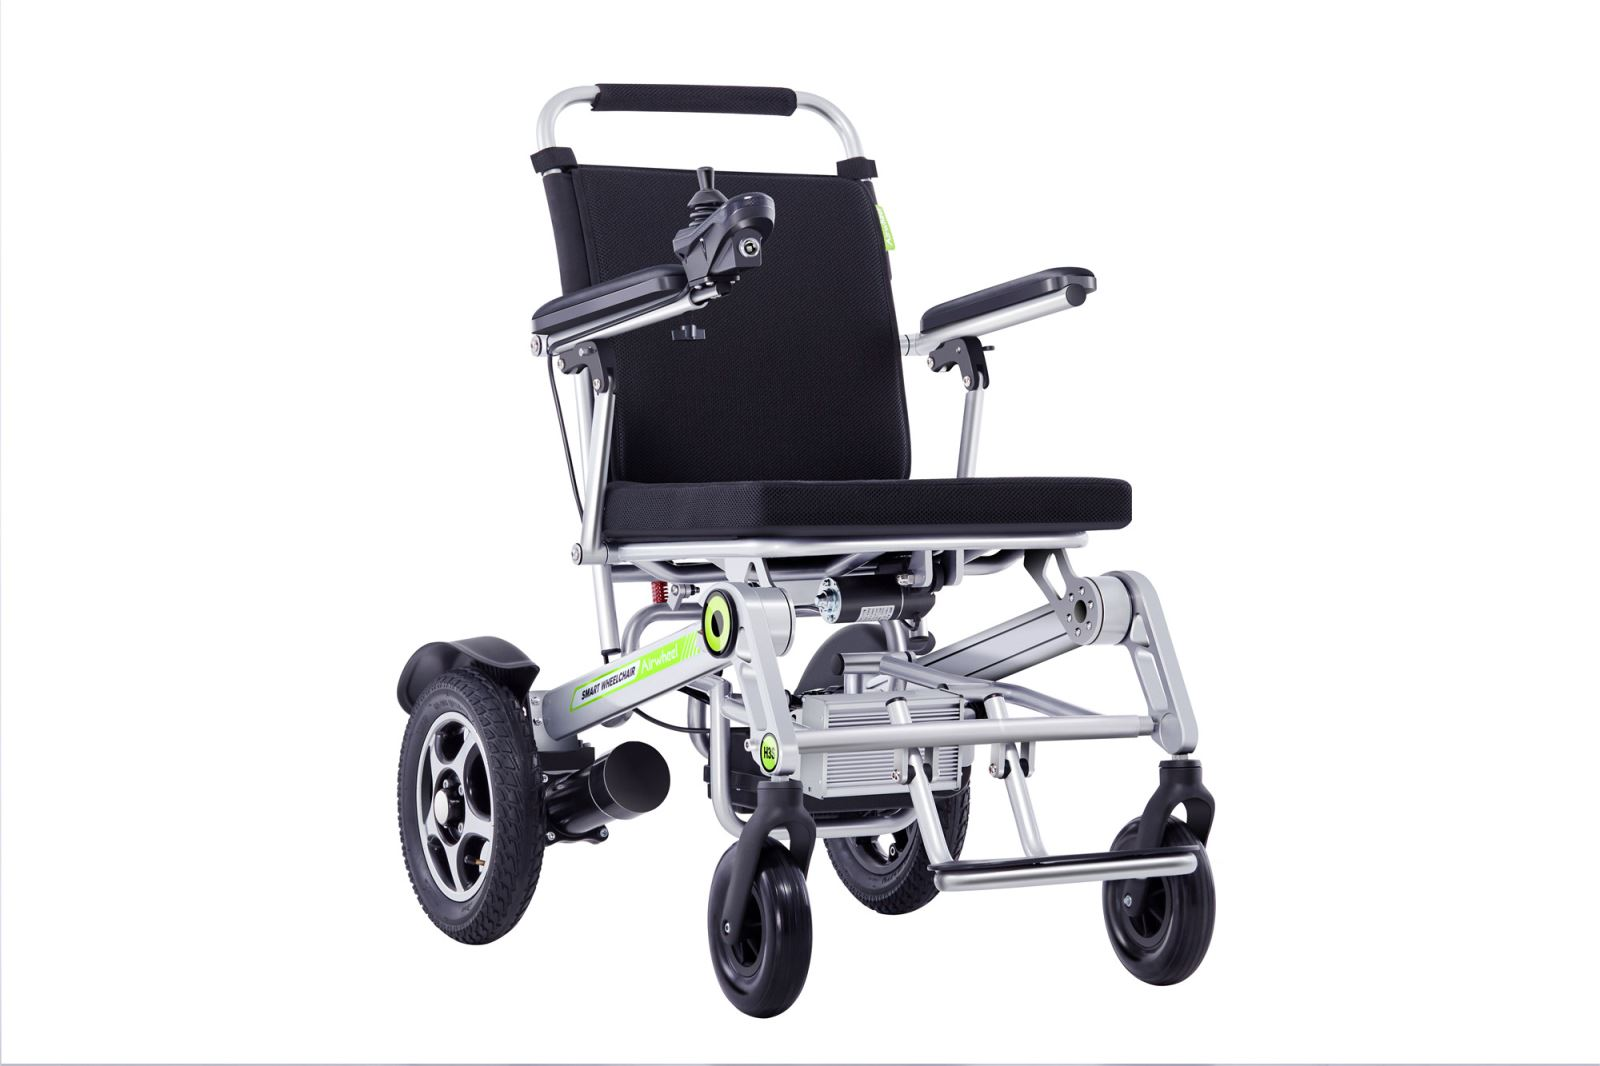 Airwheel H3S power wheelchairs